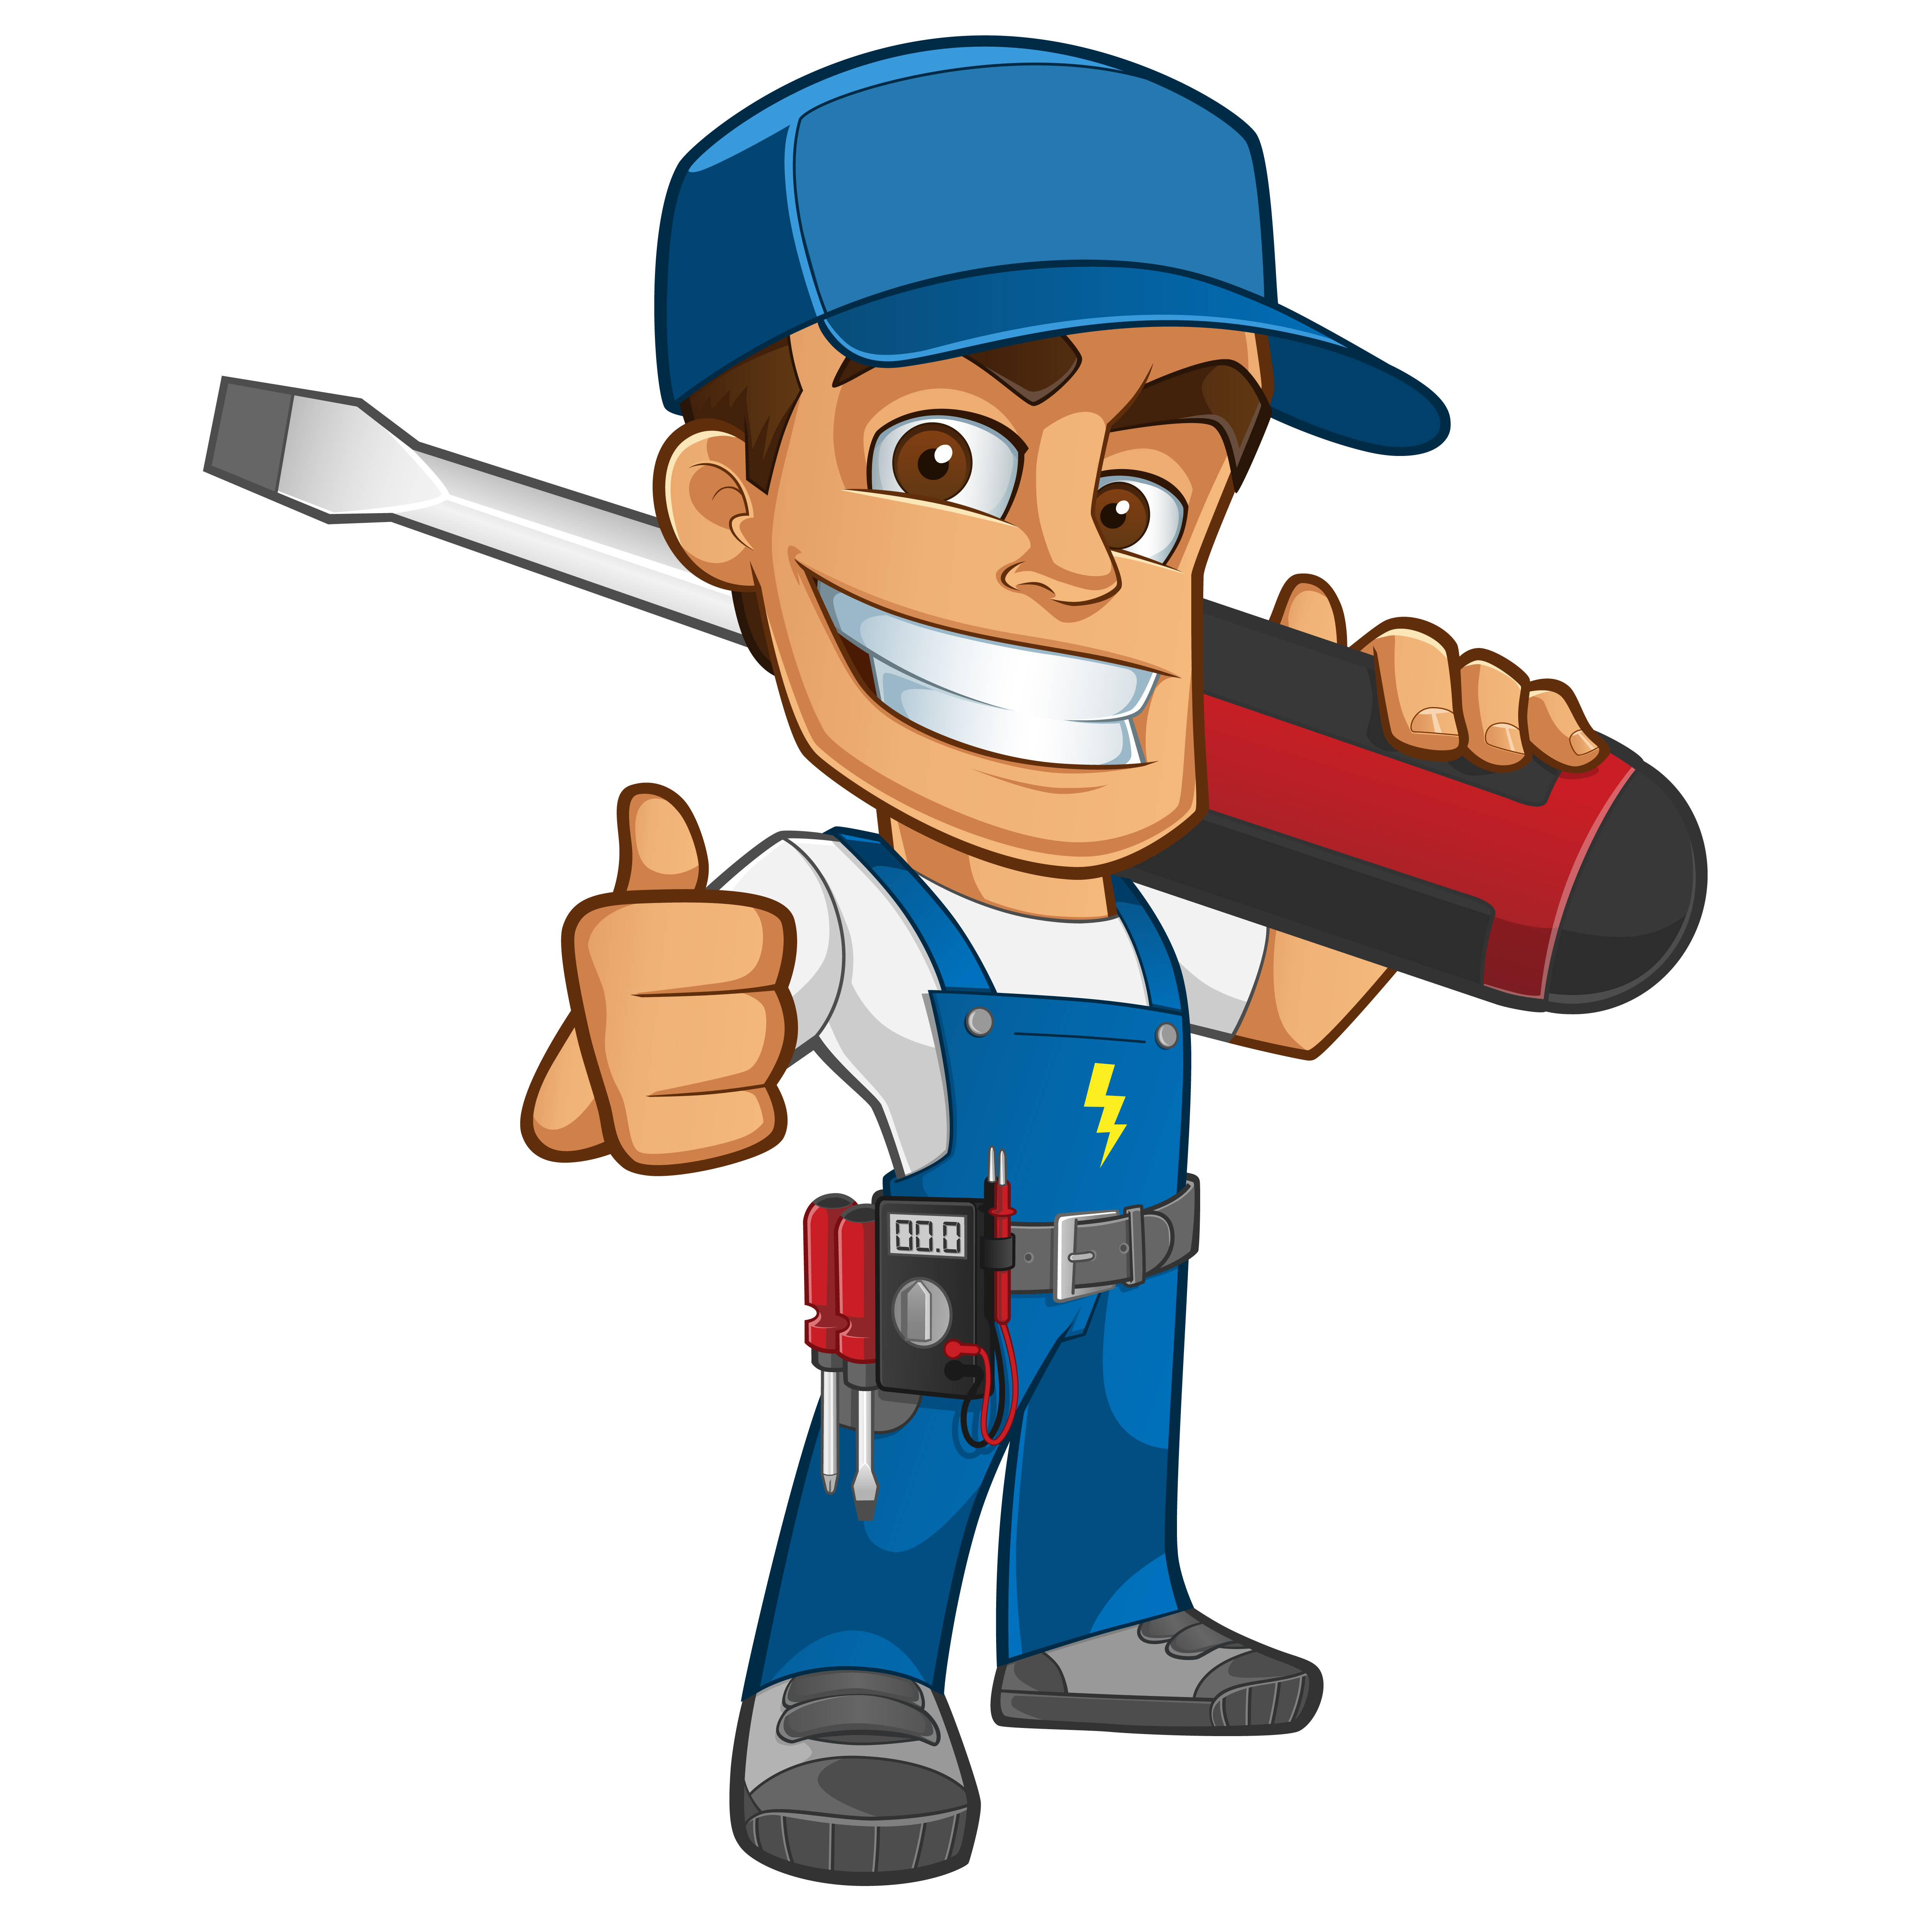 Contractor clipart factory worker. Electrical daily maintenance sb